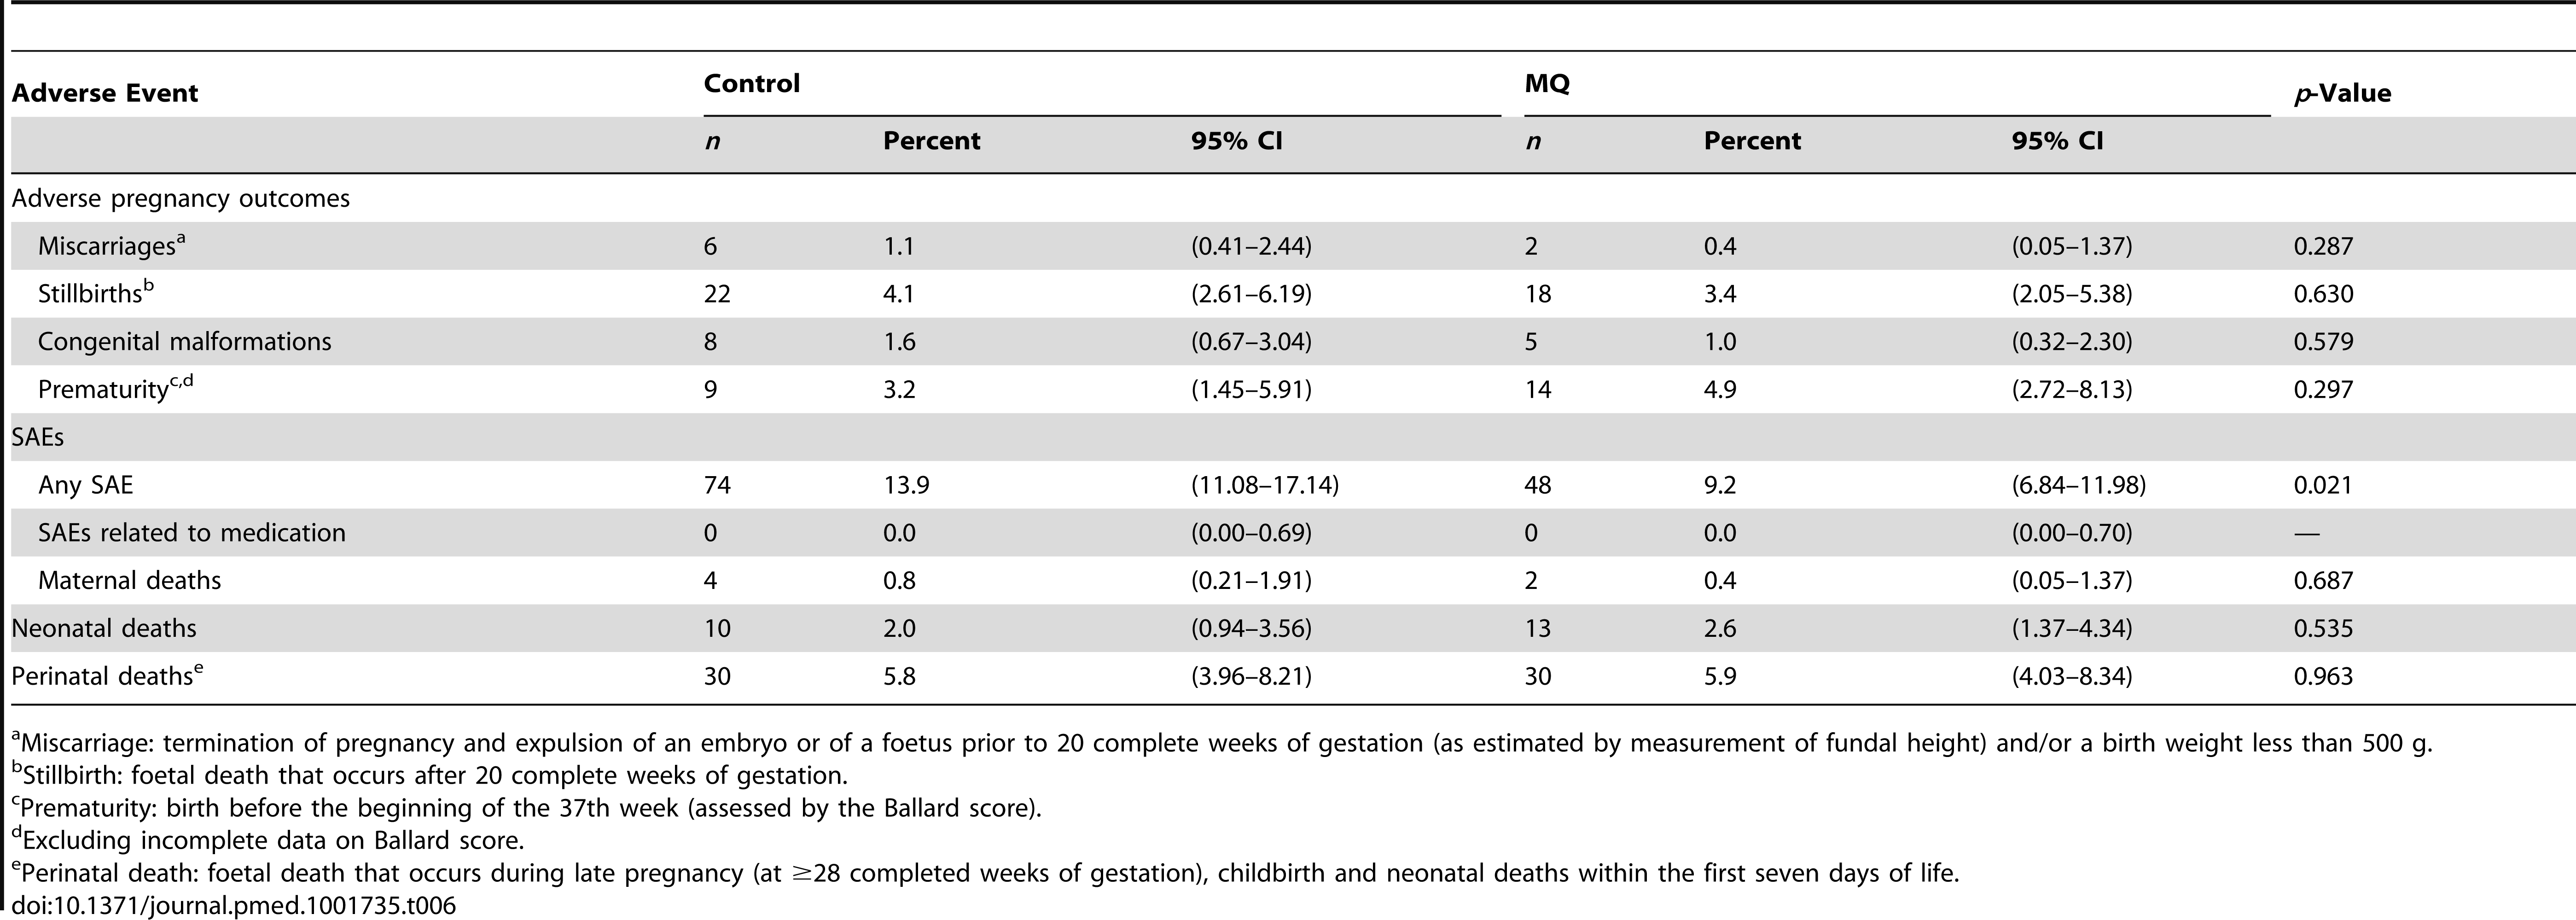 Adverse pregnancy outcomes and serious adverse events by study arm (safety cohort).